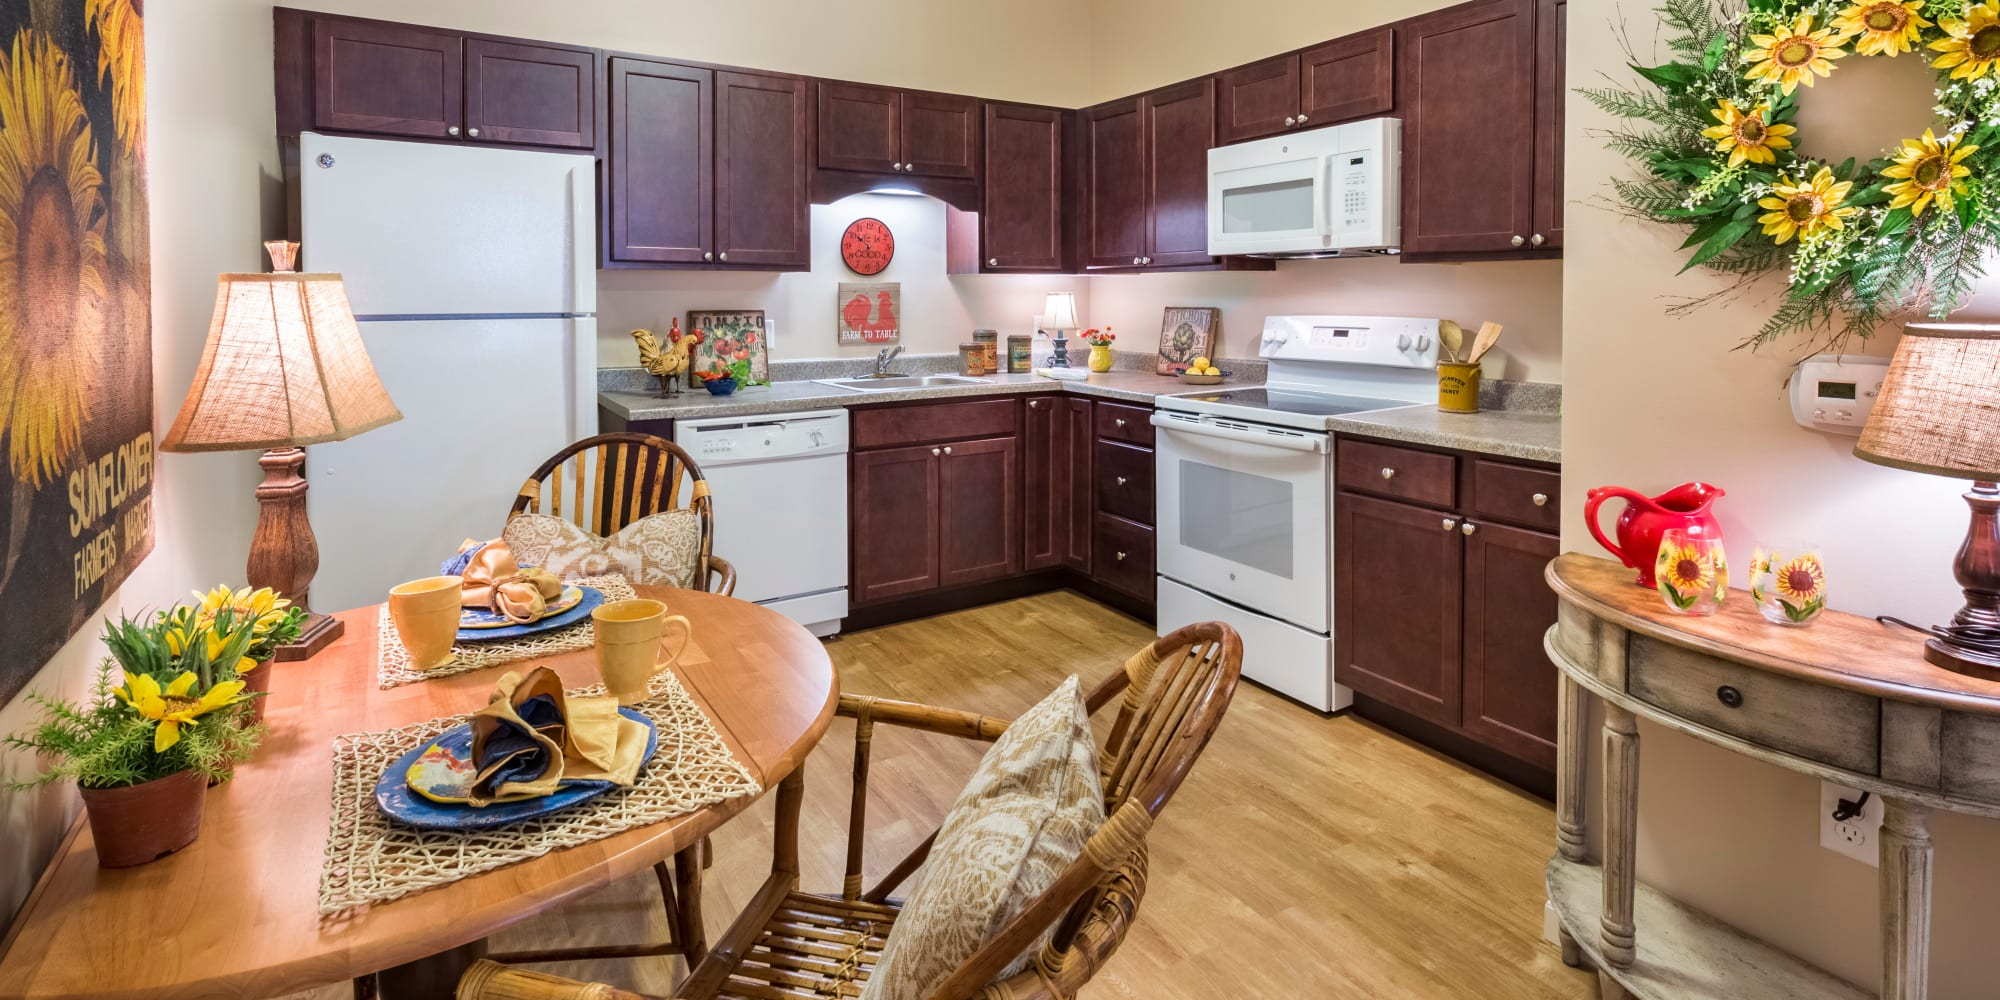 Resident kitchen at Keystone Place at Forevergreen in North Liberty, Iowa.